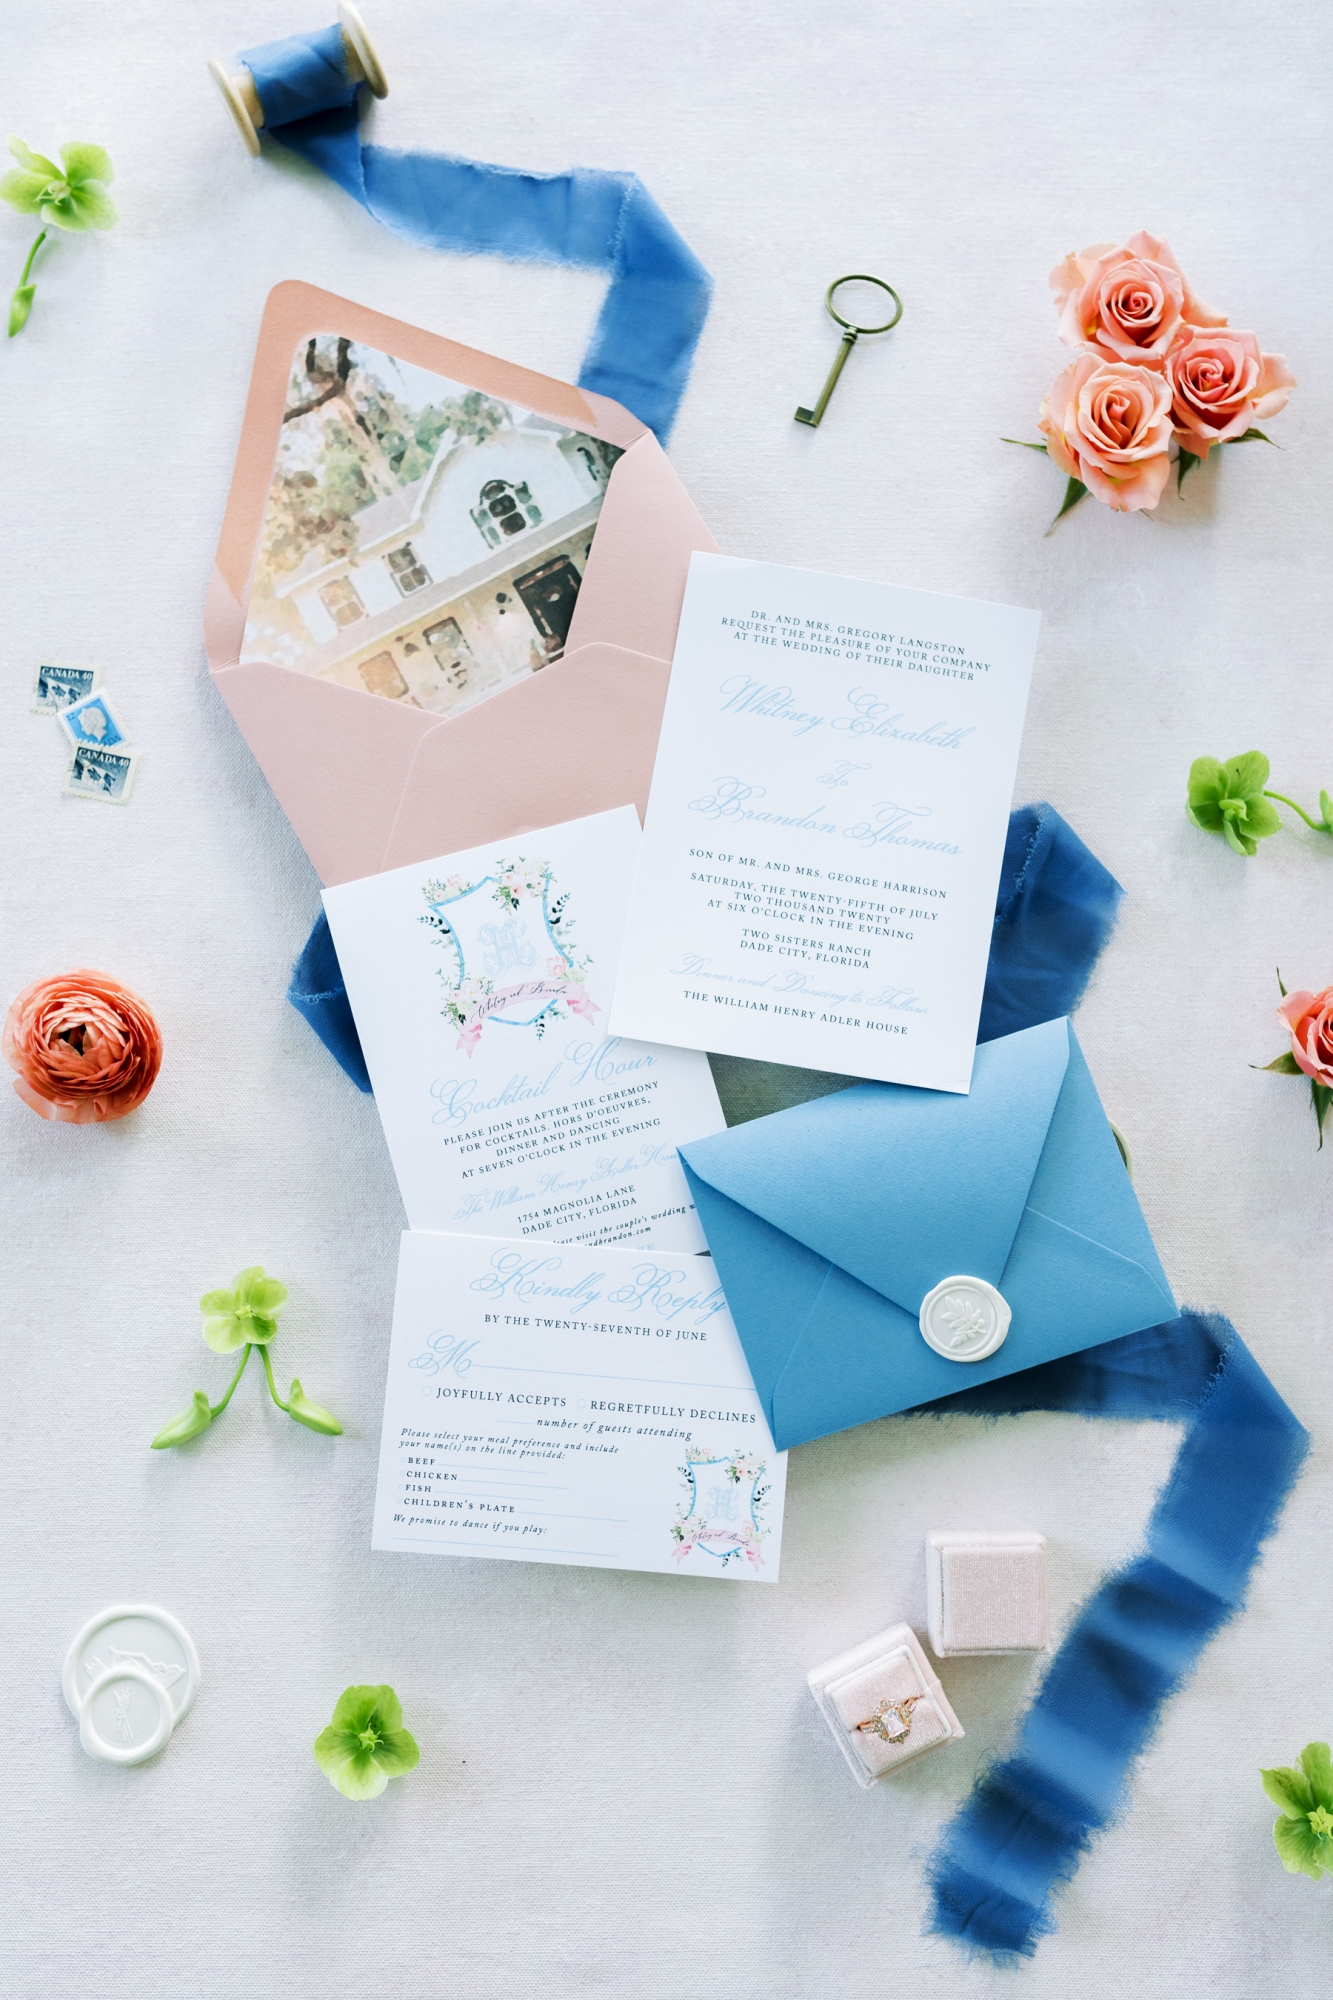 french blue invitations with a picture of the venue printed on the envelope liner